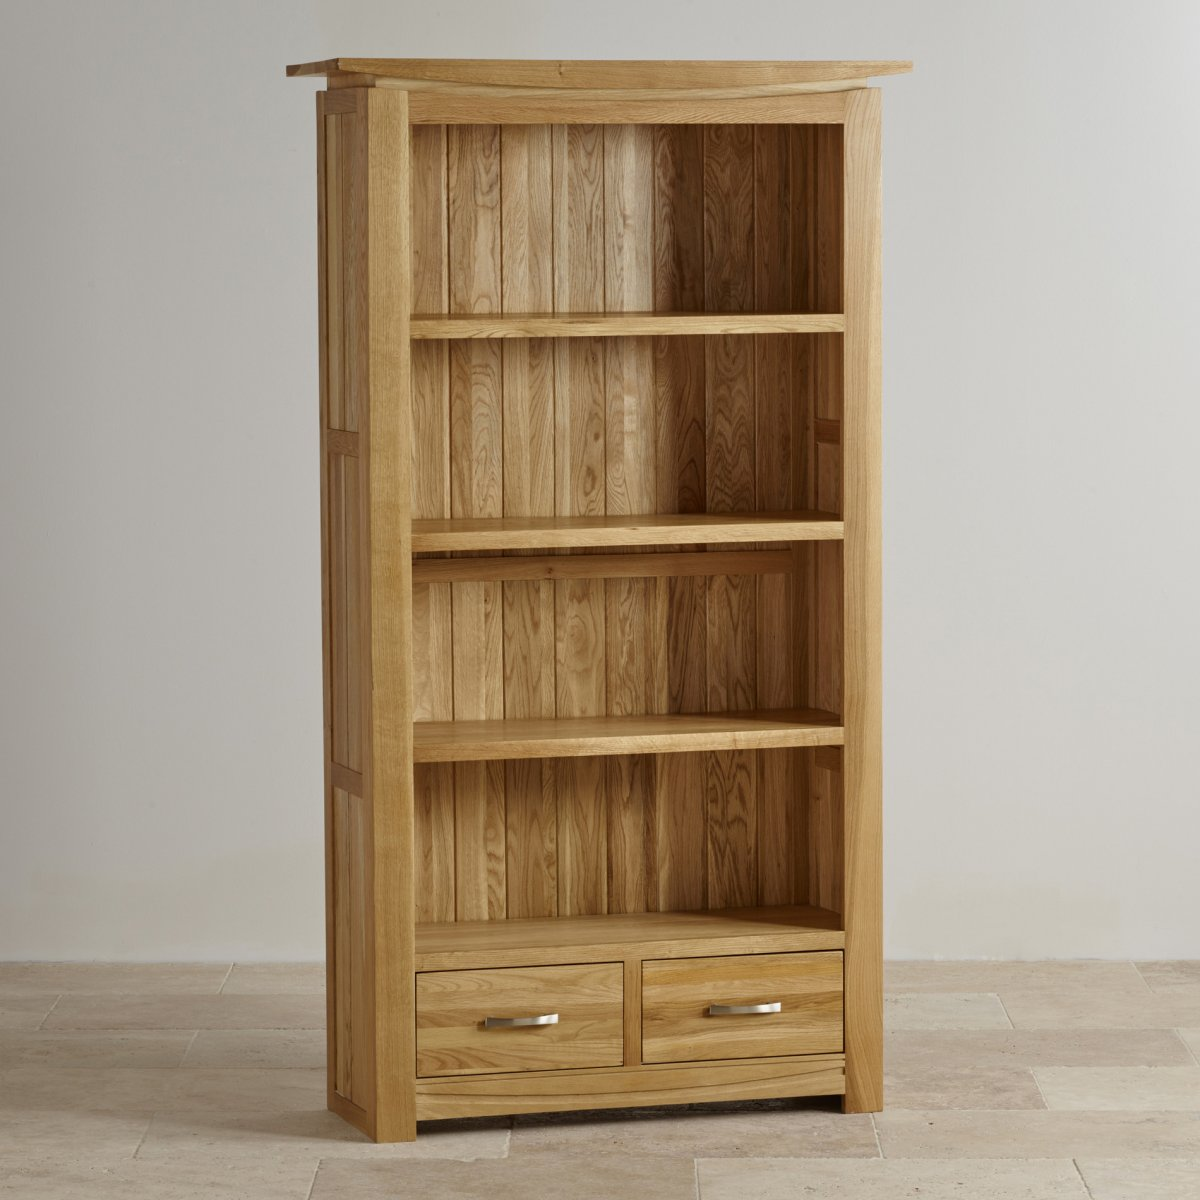 Tokyo natural solid oak bookcase living room furniture for Solid oak furniture